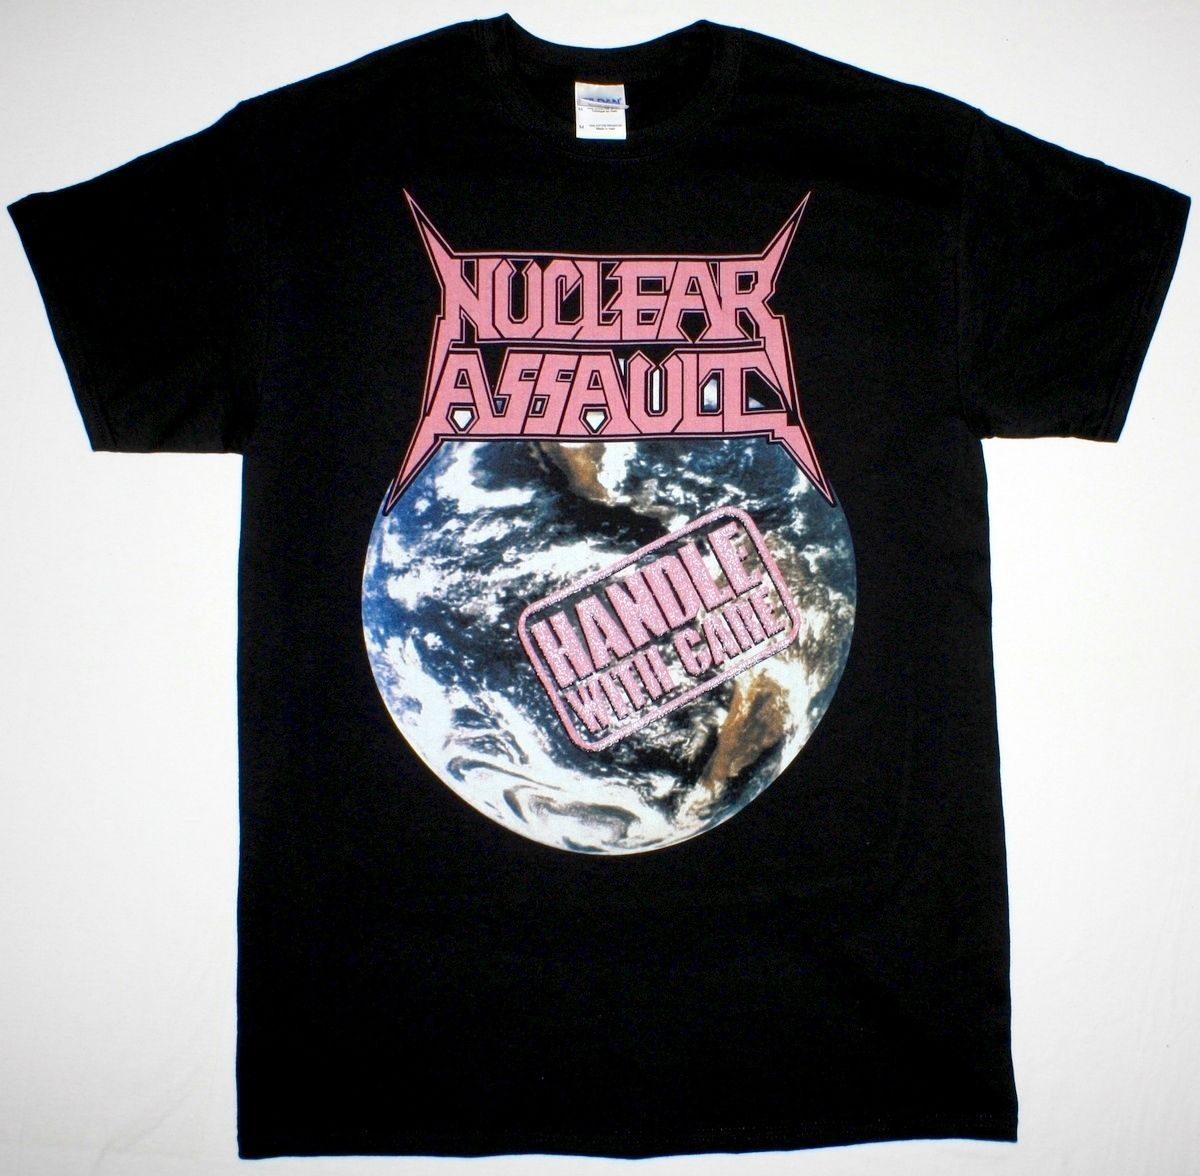 Click to Buy << NUCLEAR ASSAULT HANDLE WITH CARE S.O.D. ANTHRAX TRASH  METAL. >>